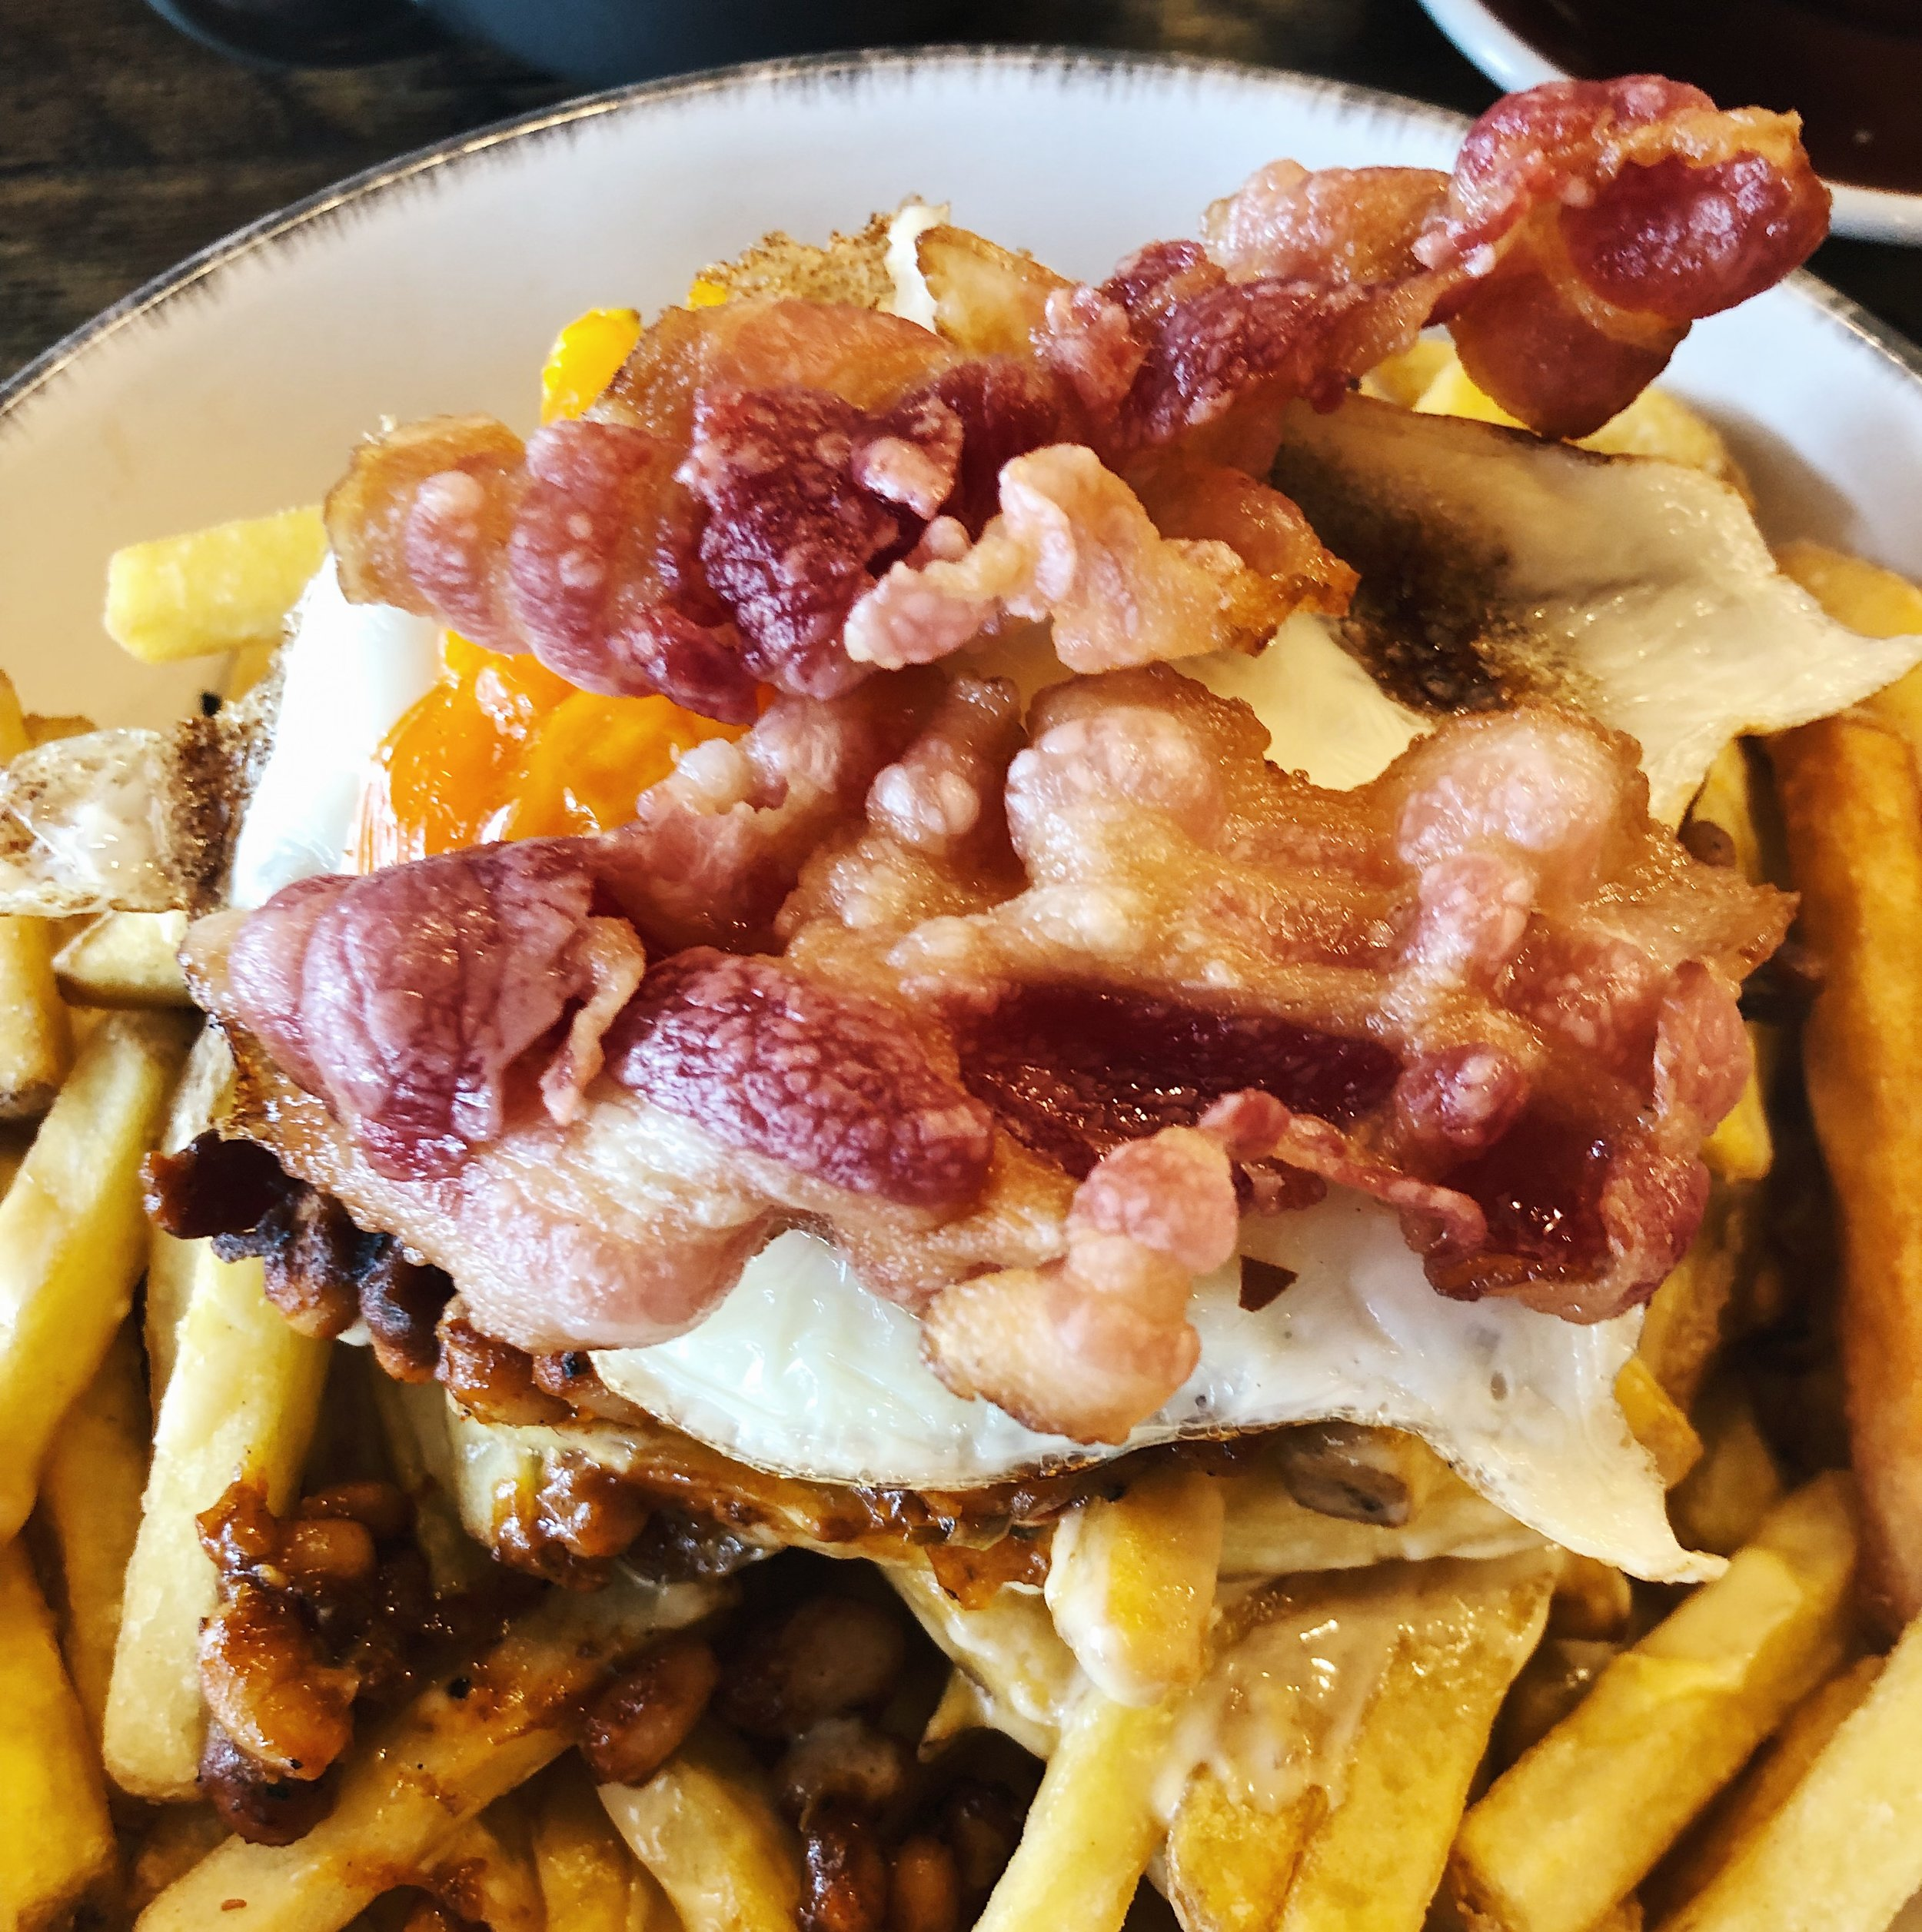 This breakfast was so good!! Smoky barbecue beans and cheese sauce on fried potatoes topped with fried egg and bacon. It was huge and my husband had to help me finish it (doesn't often happen). Very filling for a rainy morning.